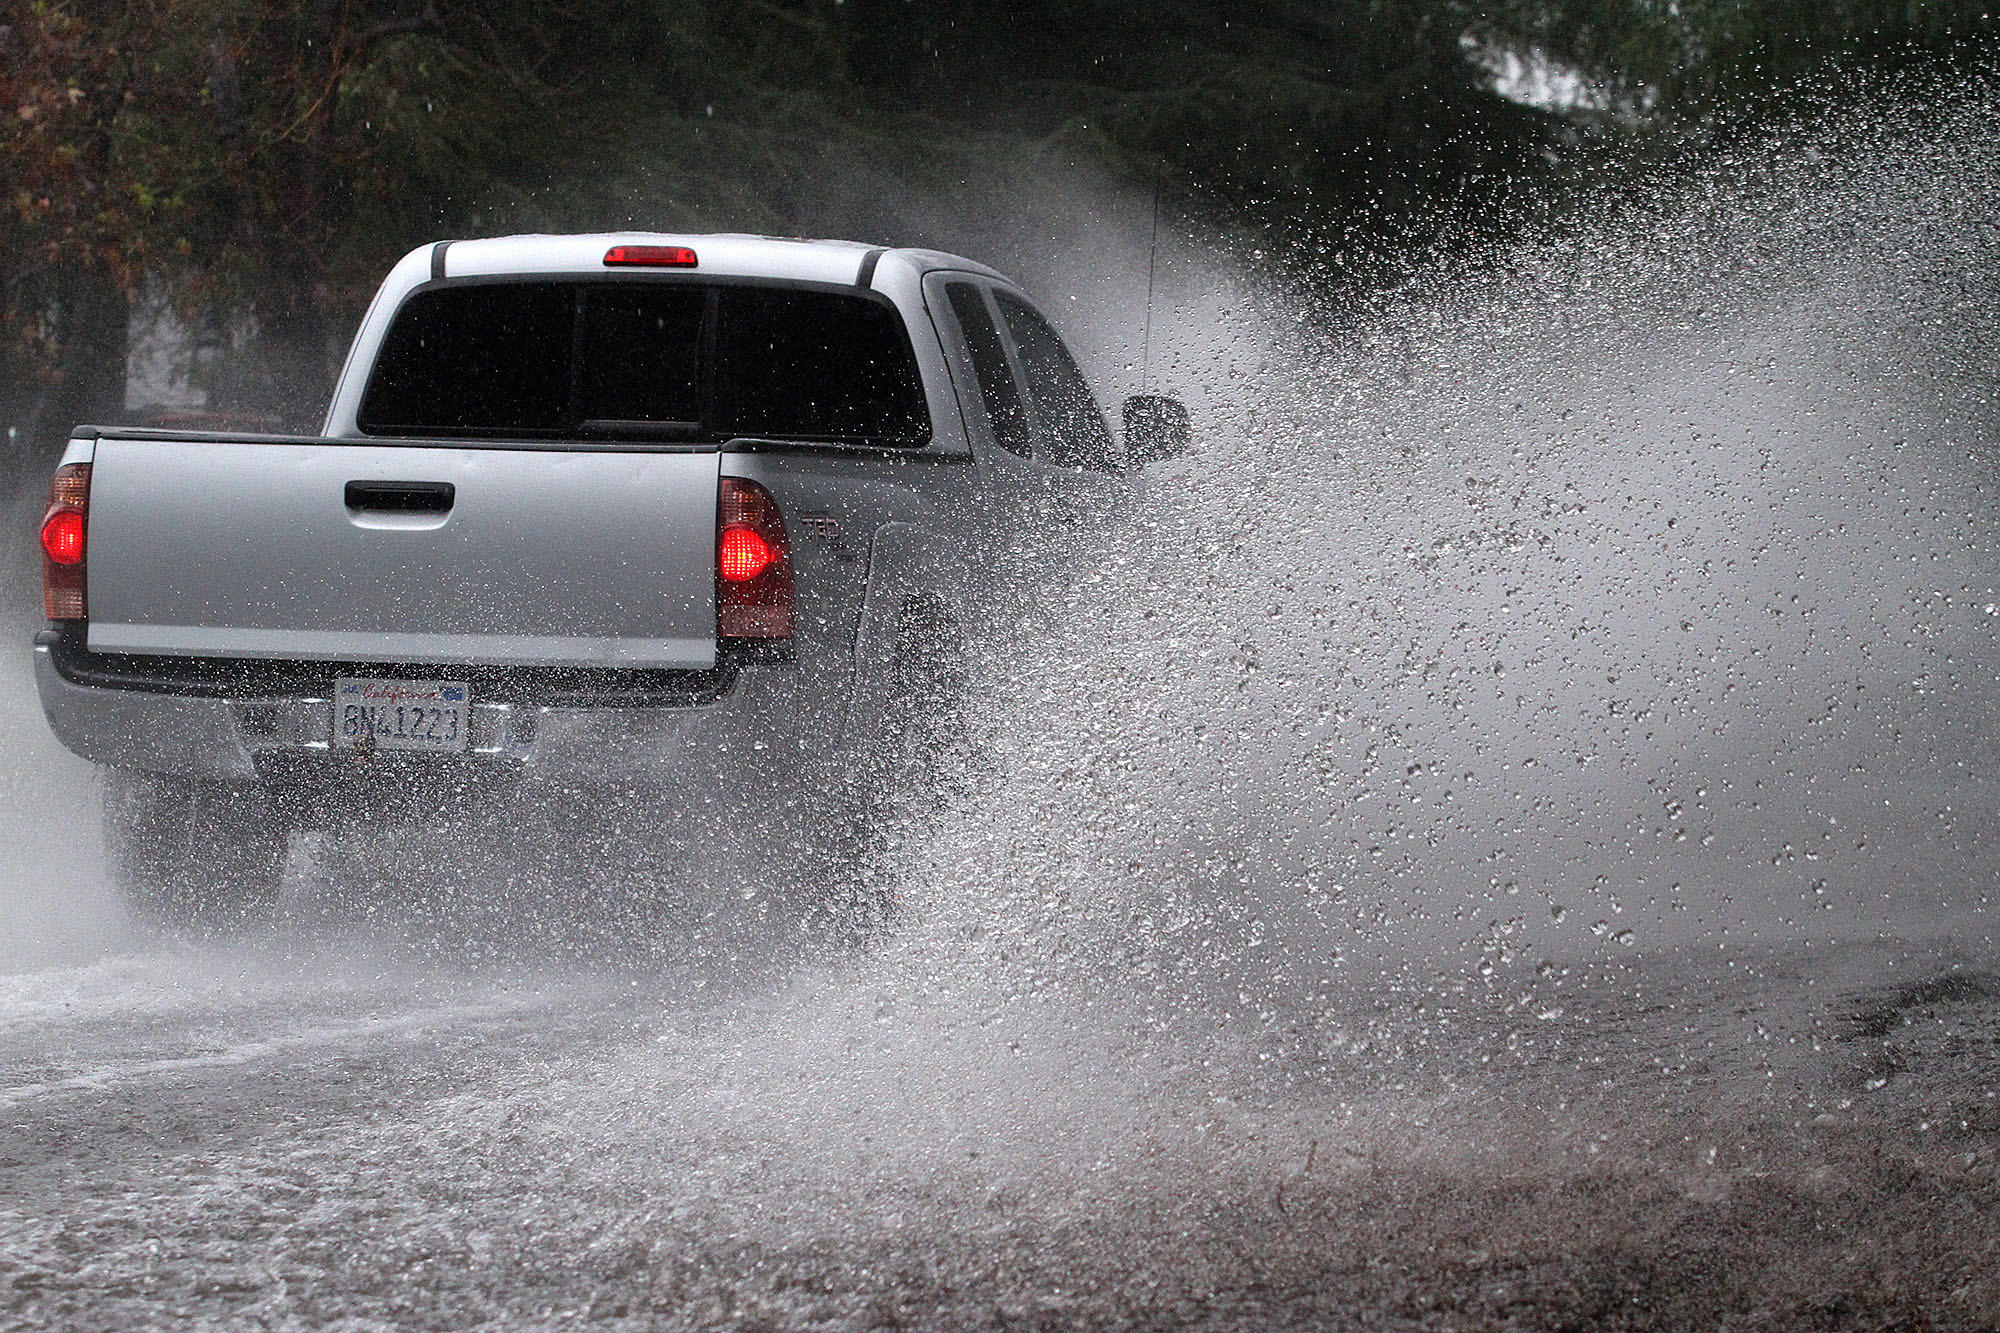 Cars and trucks on Ocean View Boulevard in La Cañada Flintridge, near the Glendale area, drive through a strong current of water running down the middle of the road on Friday, Feb. 28, 2014. Periodic heavy rain continued through the weekend.